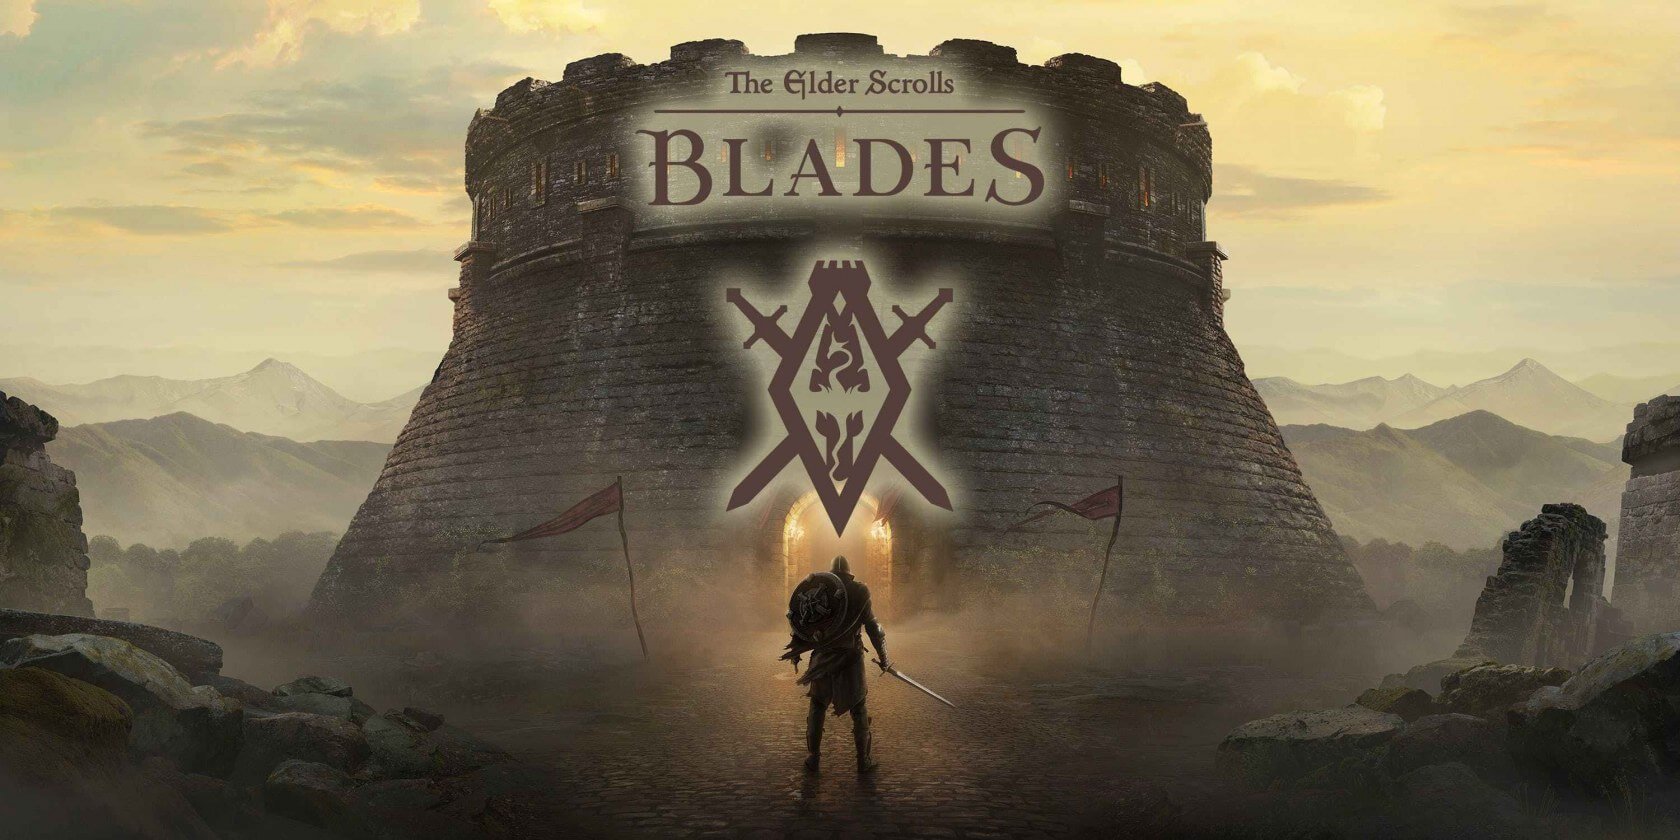 Photo of The Elder Scrolls Blades va întârzia